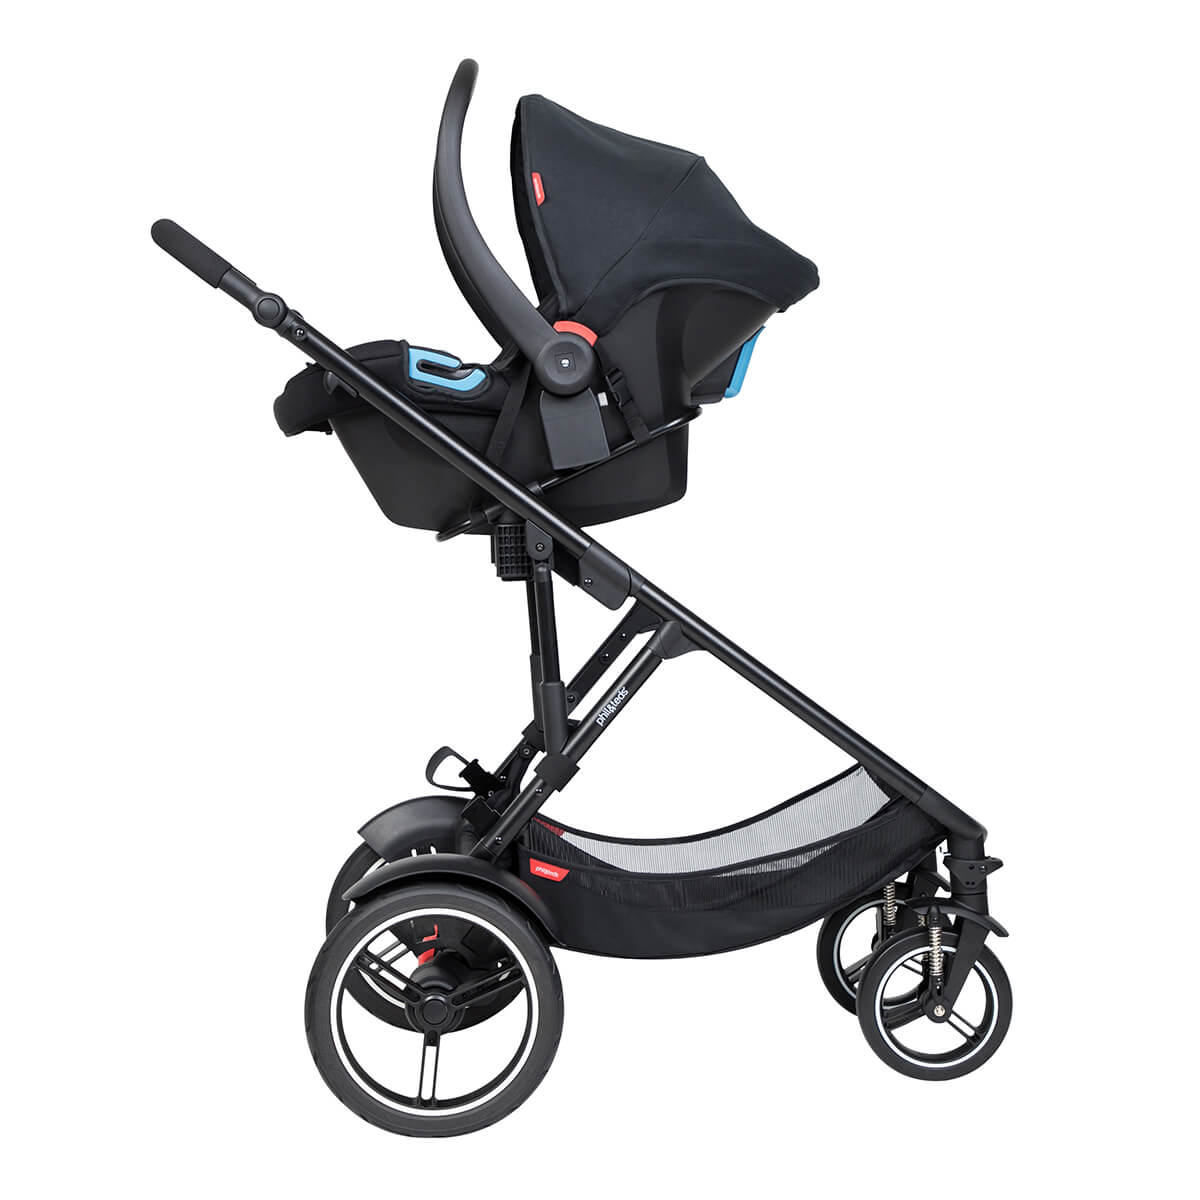 https://cdn.accentuate.io/4381204447309/19466203660482/philteds-voyager-buggy-with-travel-system-in-parent-facing-mode-v1626485501303.jpg?1200x1200